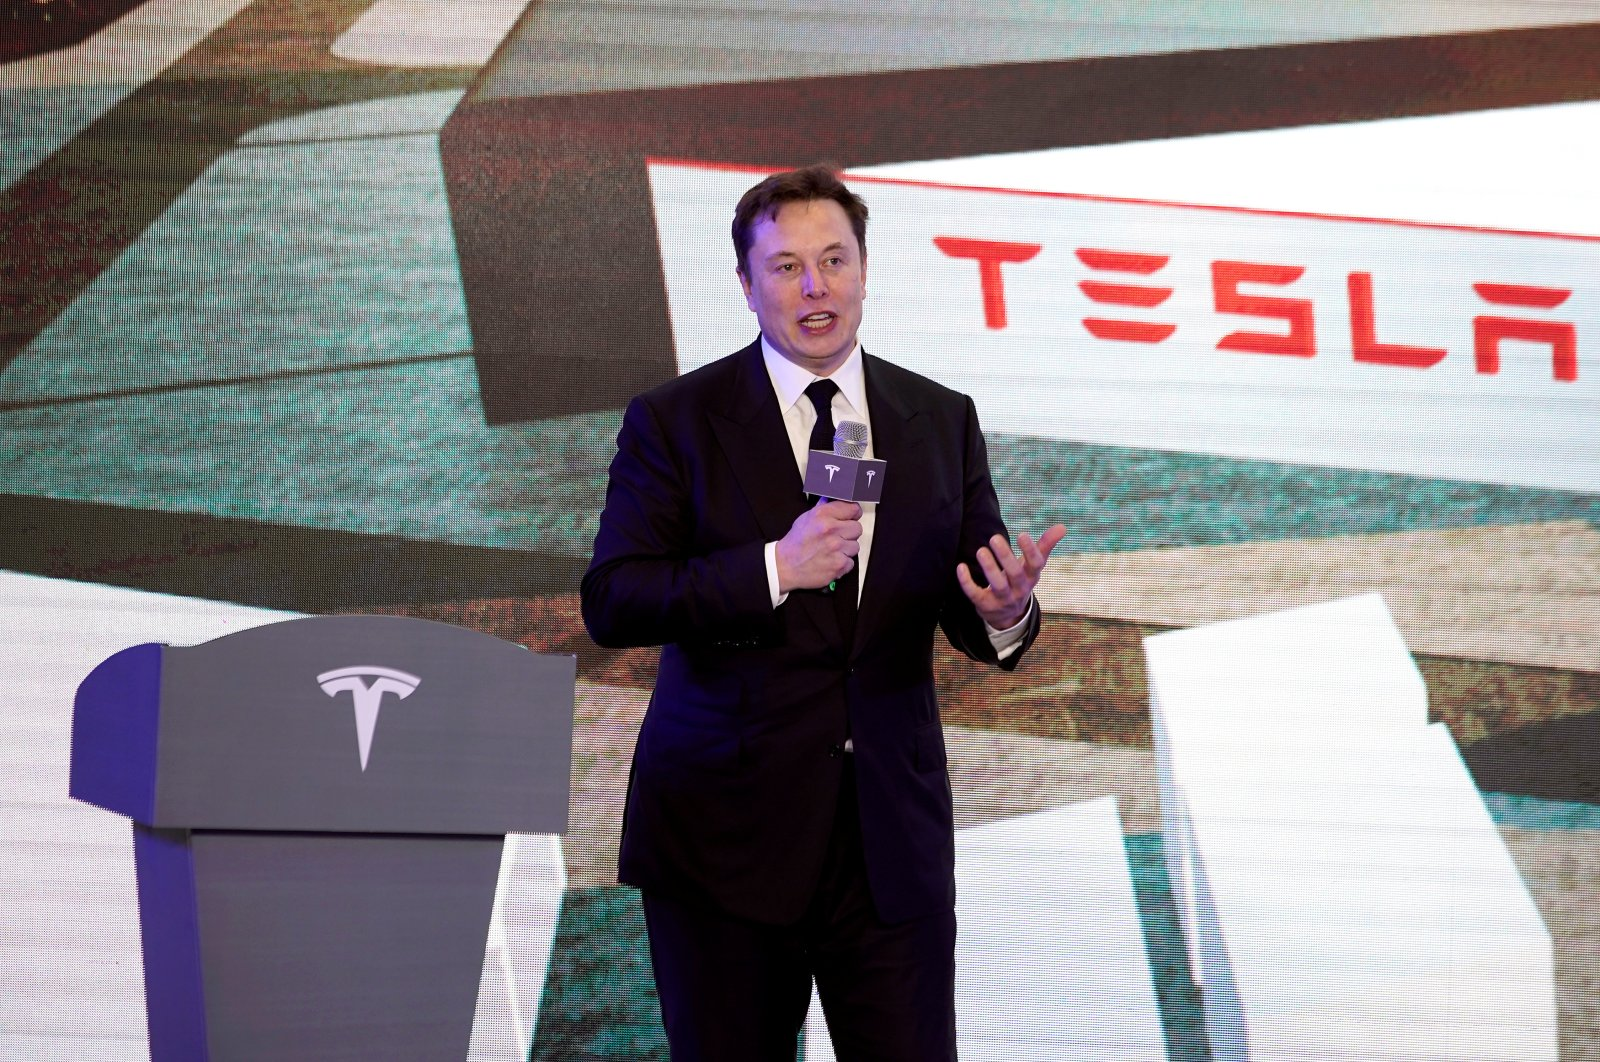 Tesla Inc CEO Elon Musk speaks at an opening ceremony for Tesla China-made Model Y program in Shanghai, China Jan. 7, 2020. (Reuters Photo)